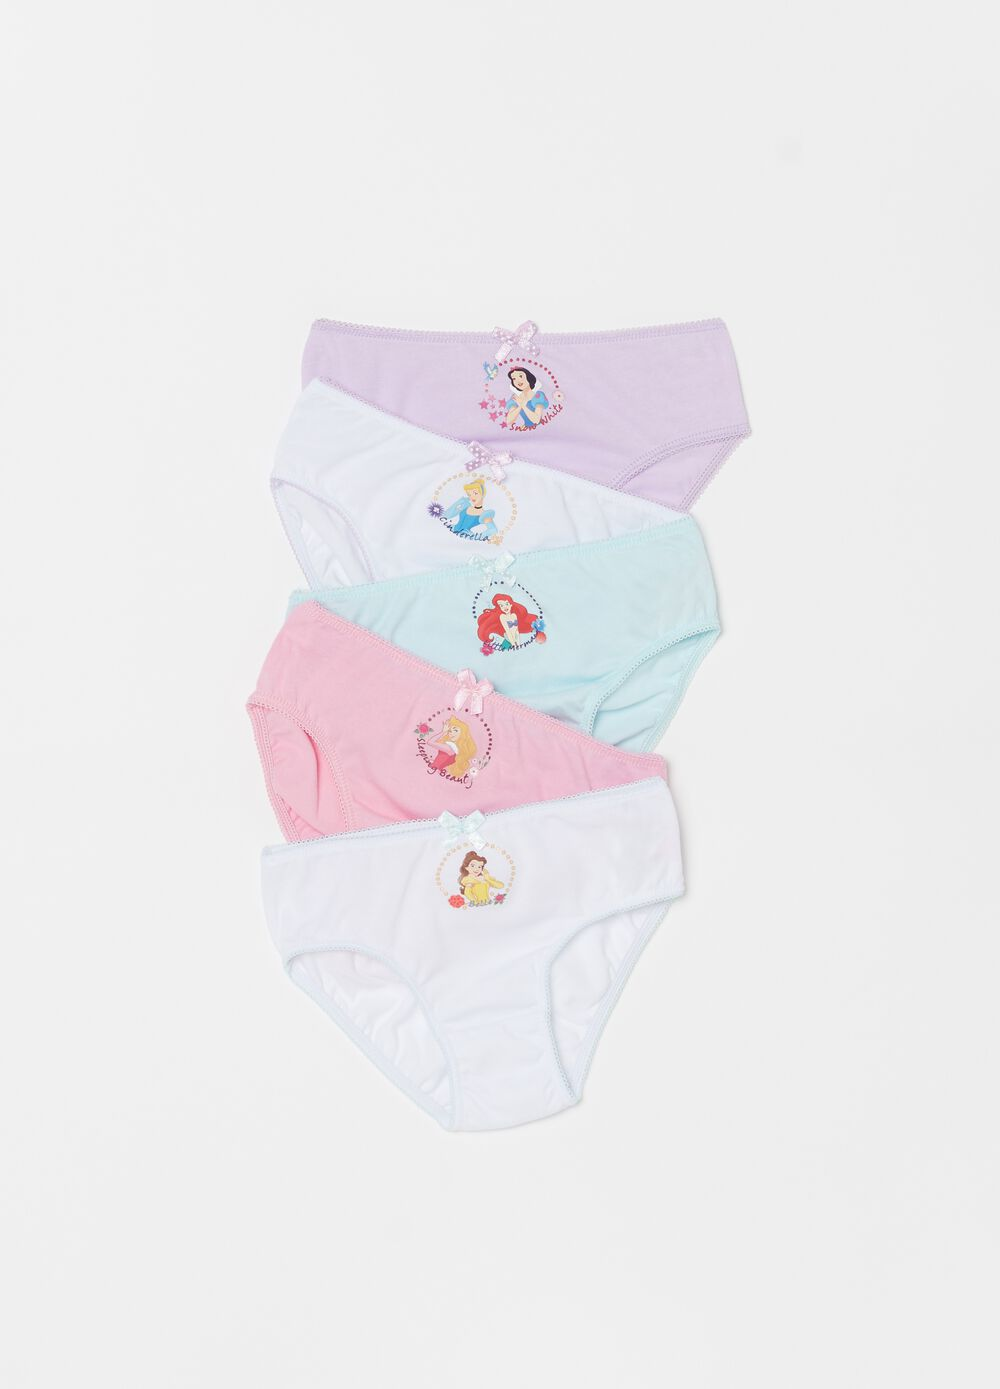 Five-pack Disney organic cotton briefs